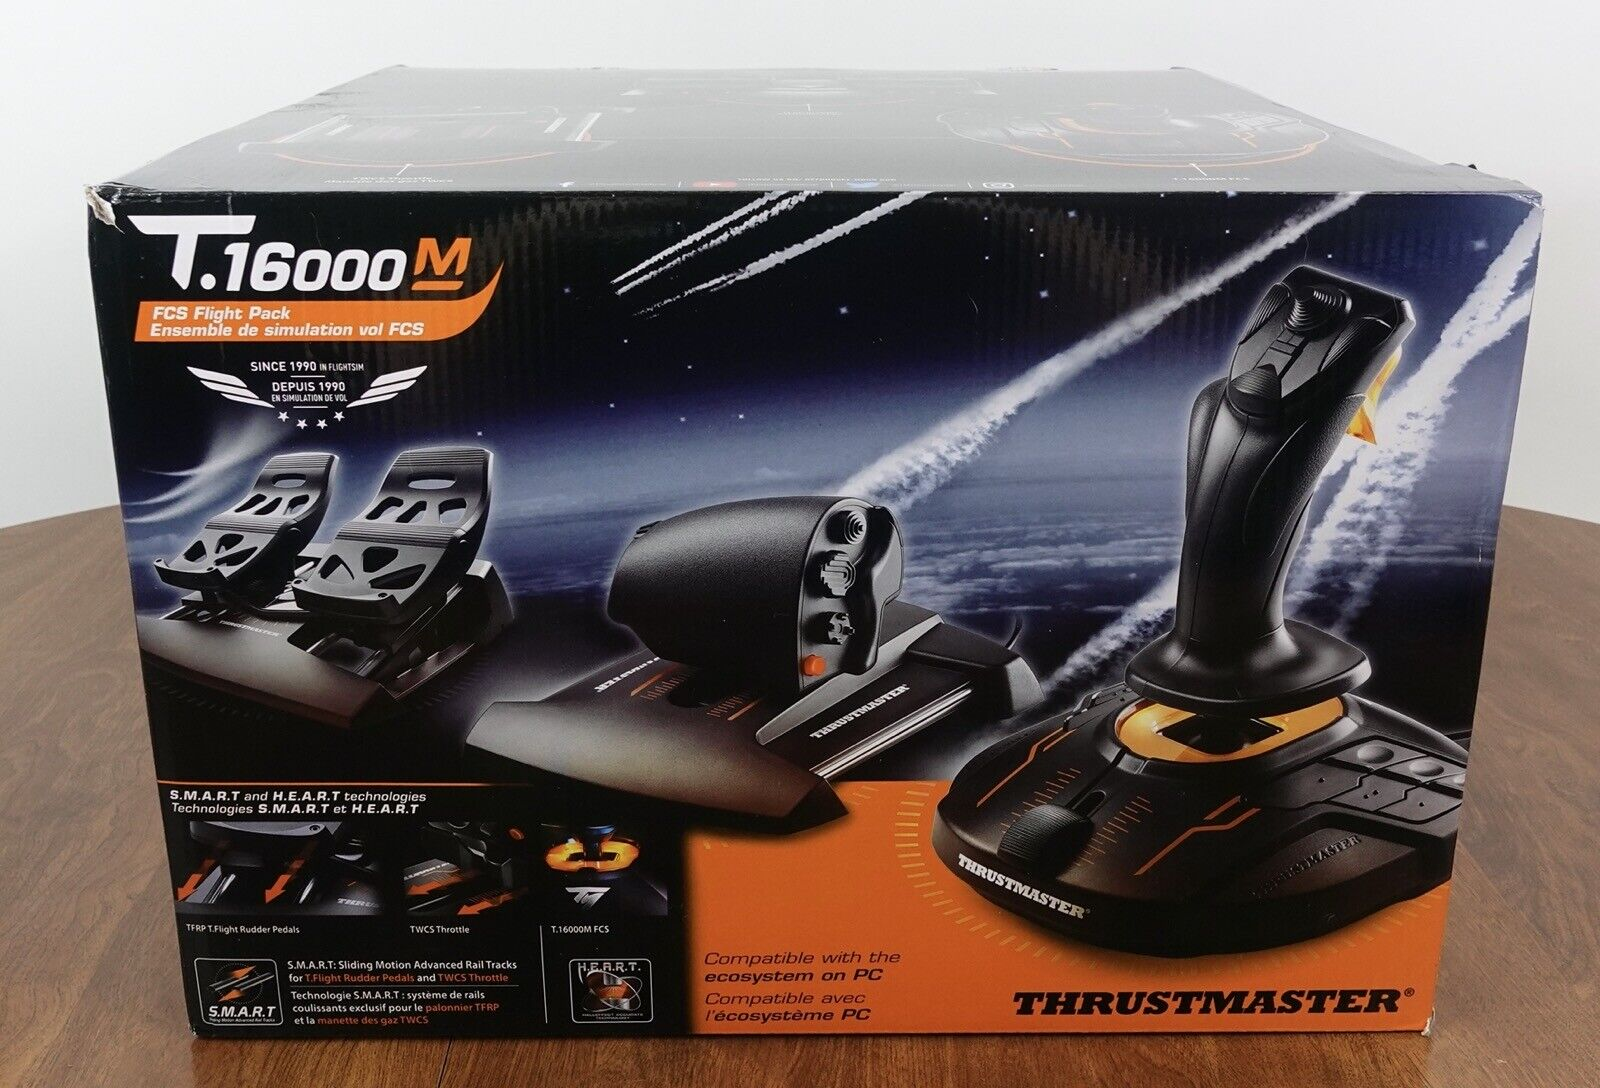 IN HAND Thrustmaster T16000M FCS Flight Pack - $349.99